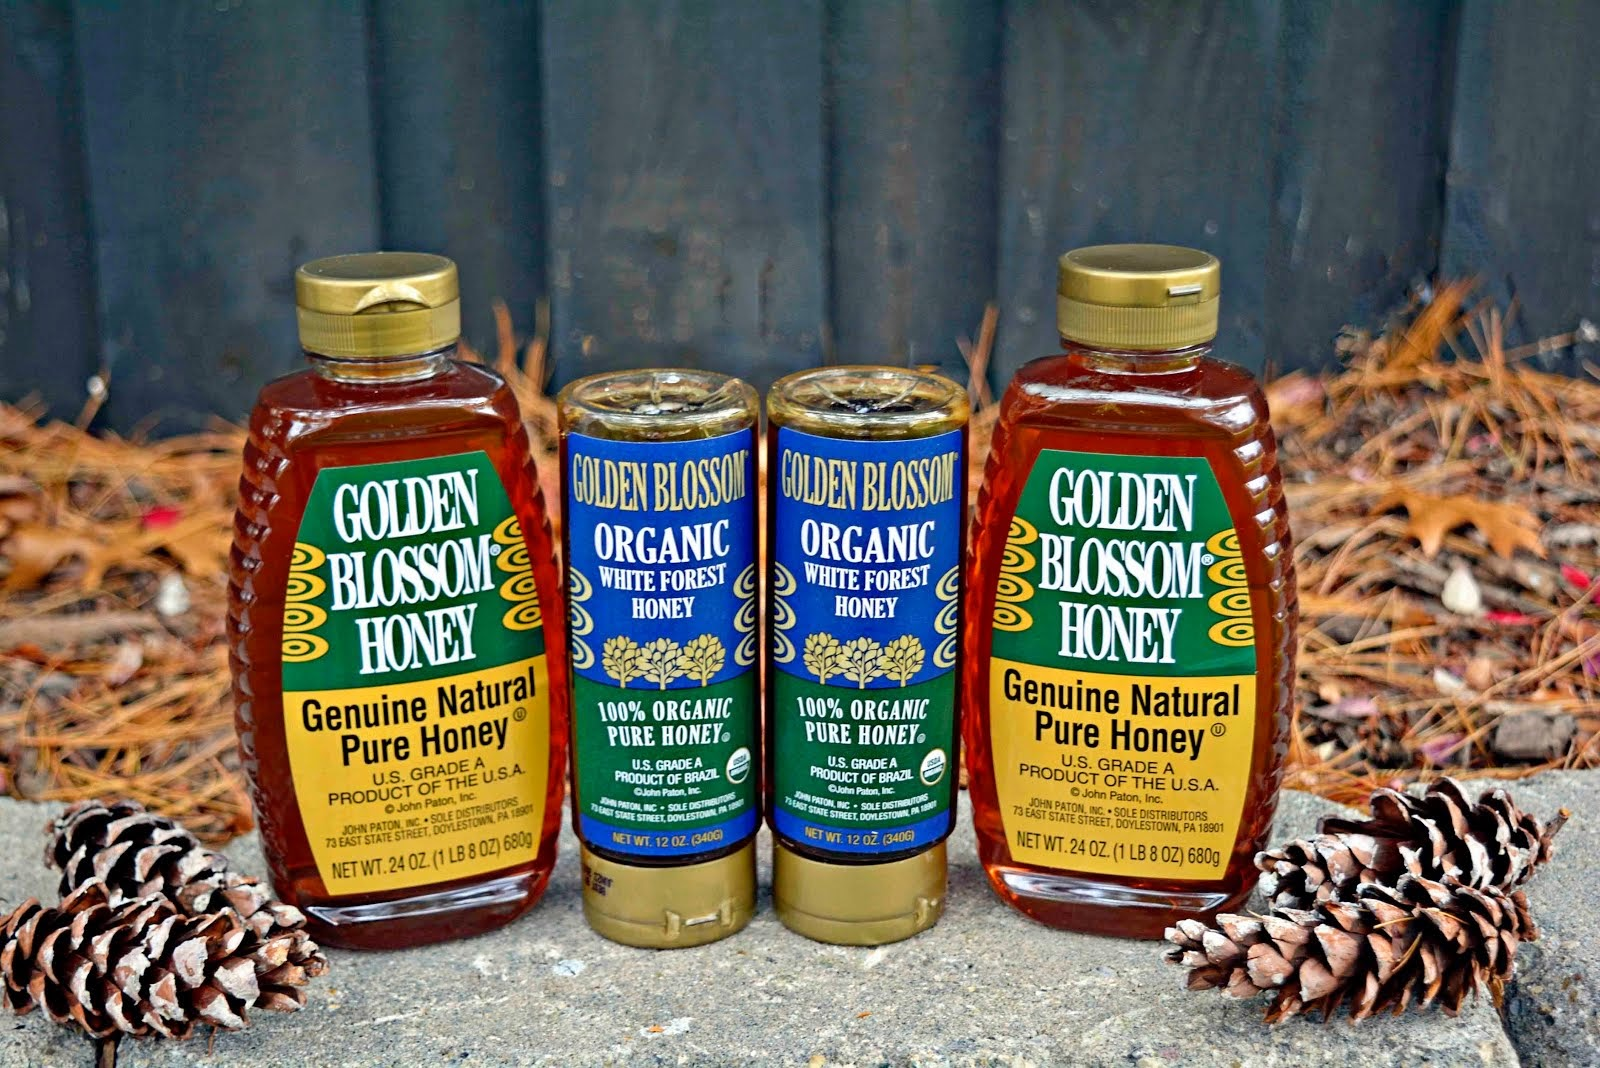 Enter To Win Golden Blossom Honey